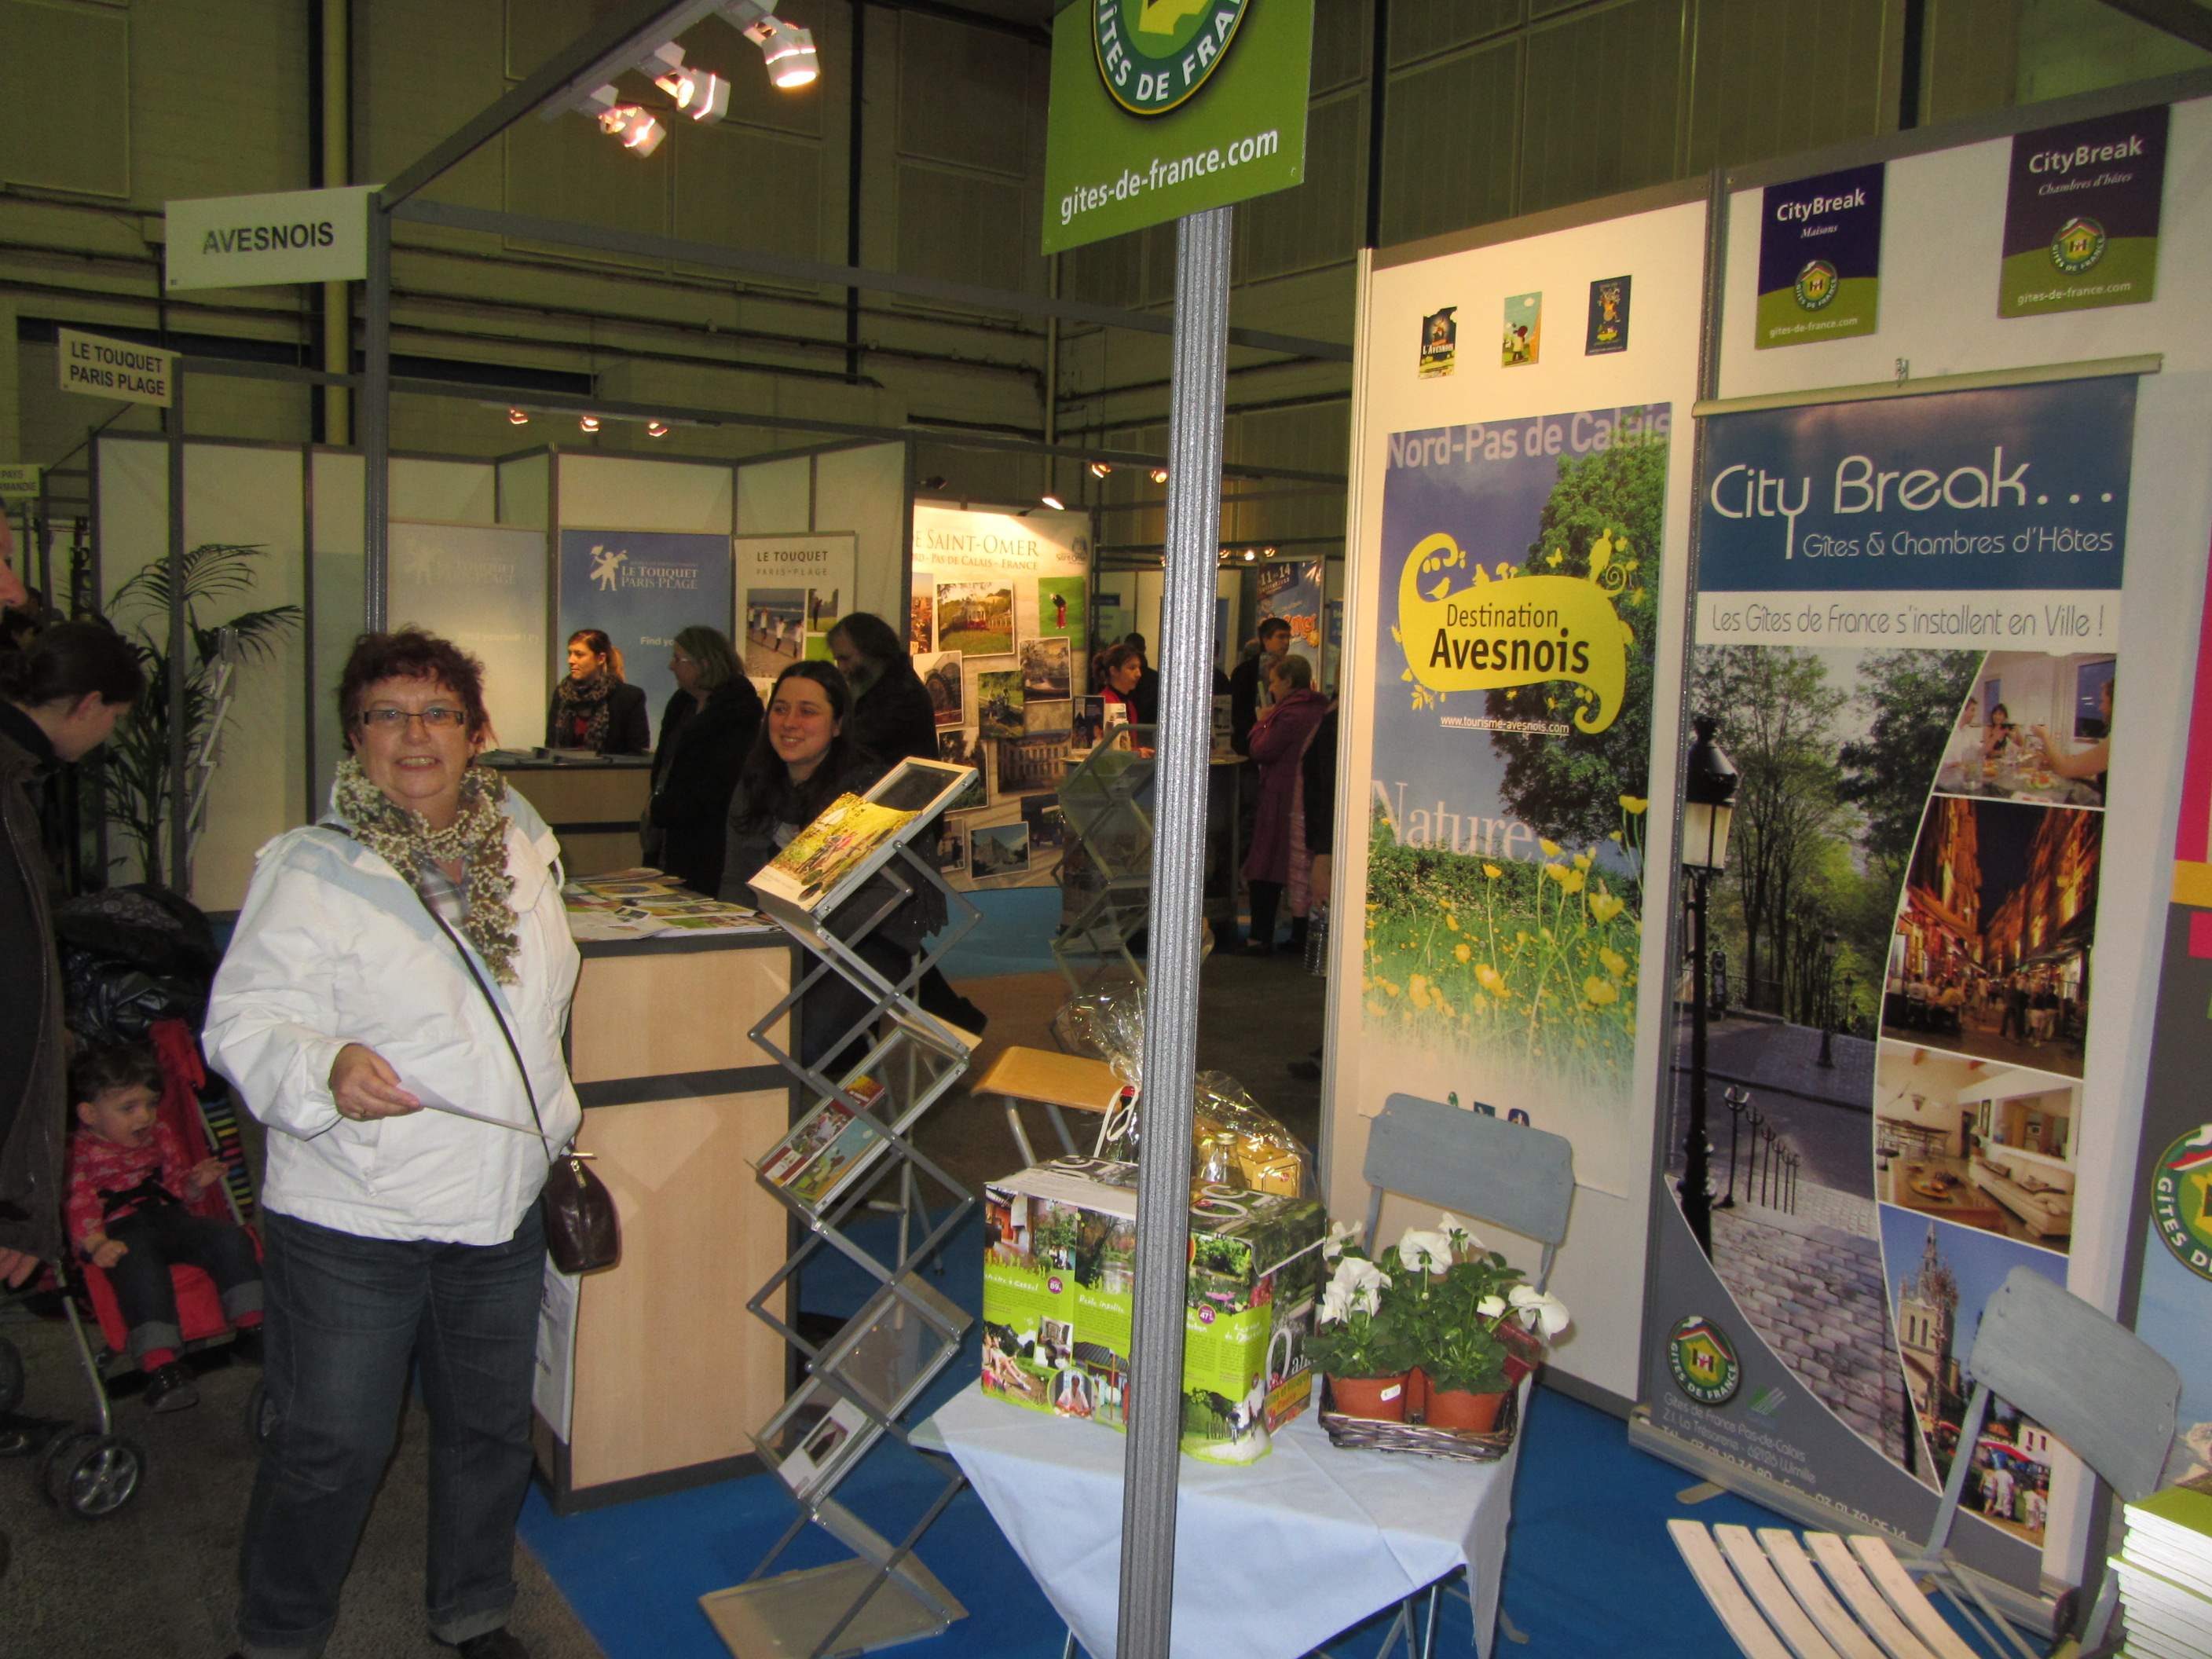 Salon tendance Nature Reims le 18 mars 2013 (8)